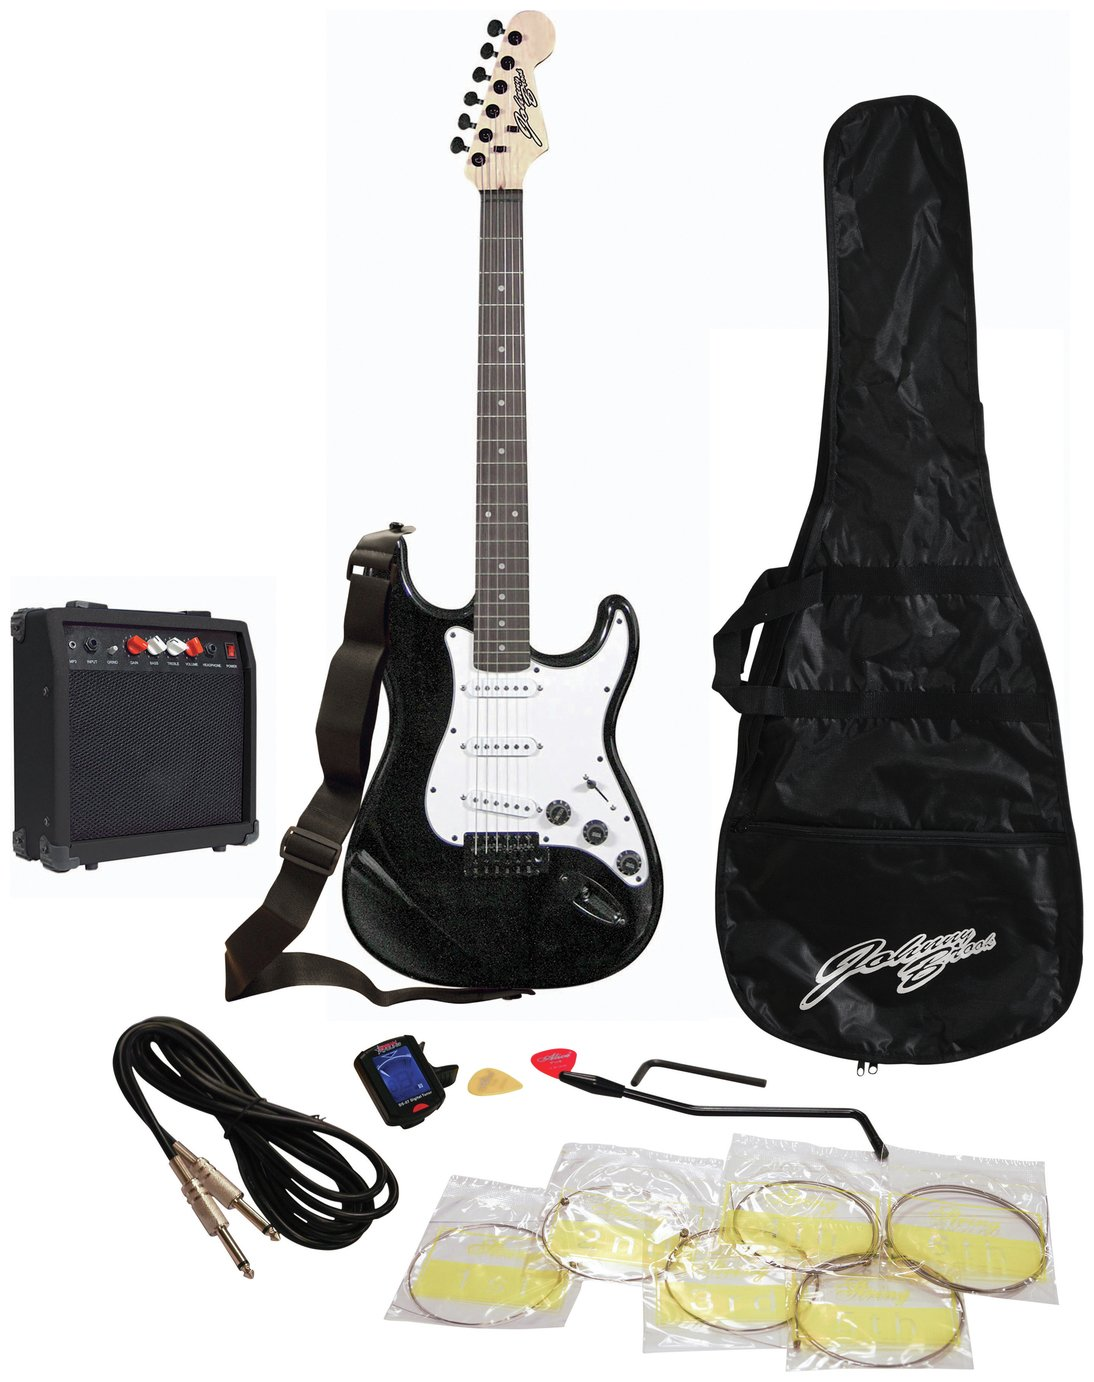 Johnny Brook Standard Guitar Kit with Amp - Black